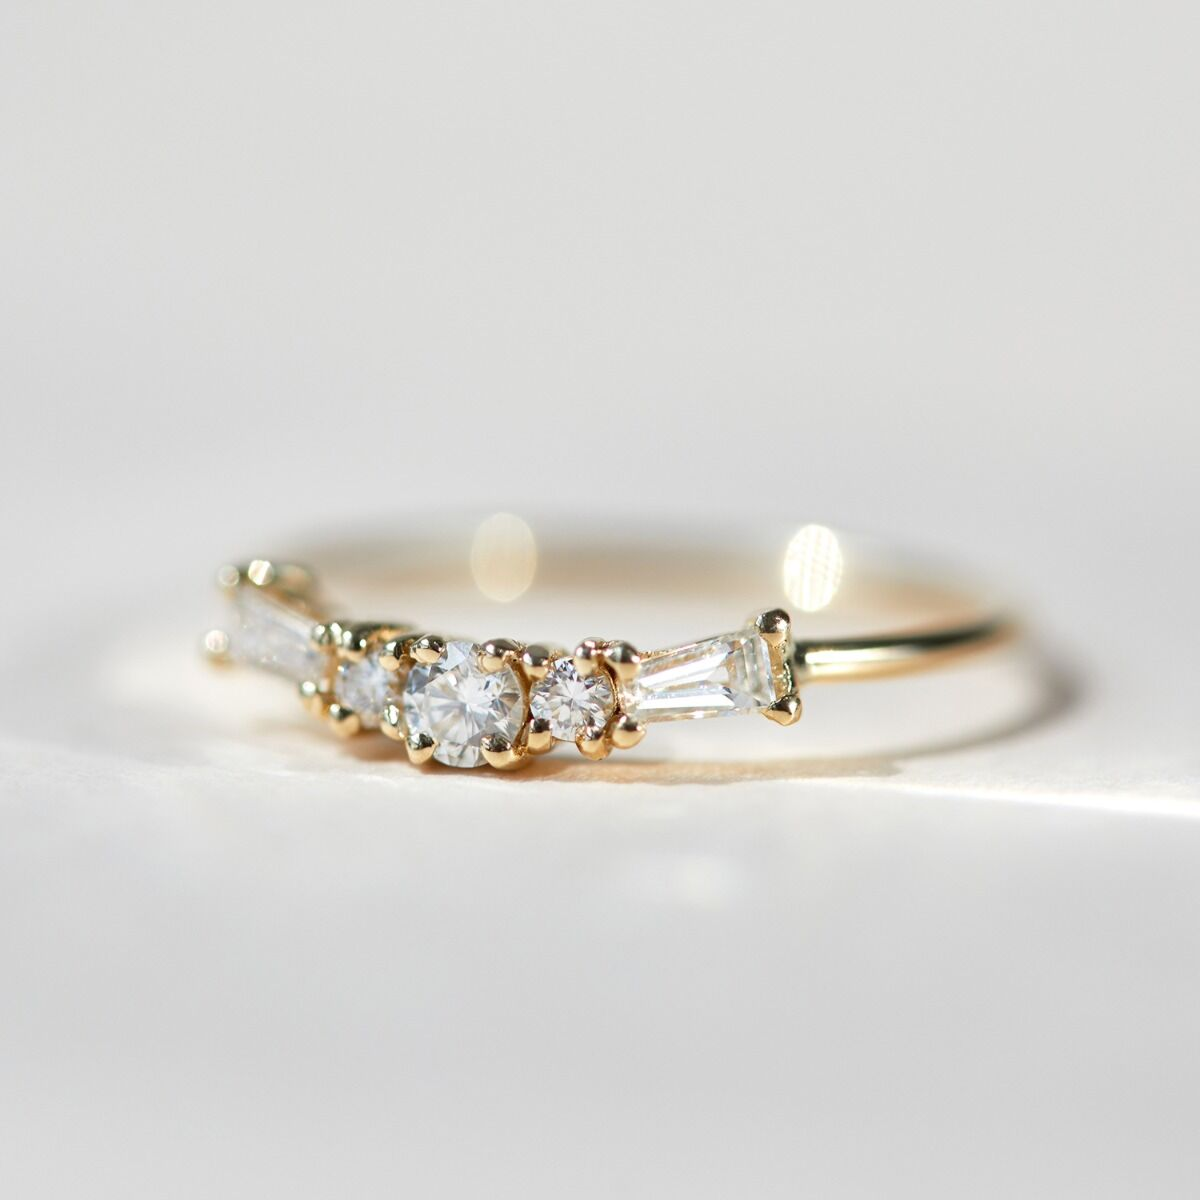 Constellation Ring image